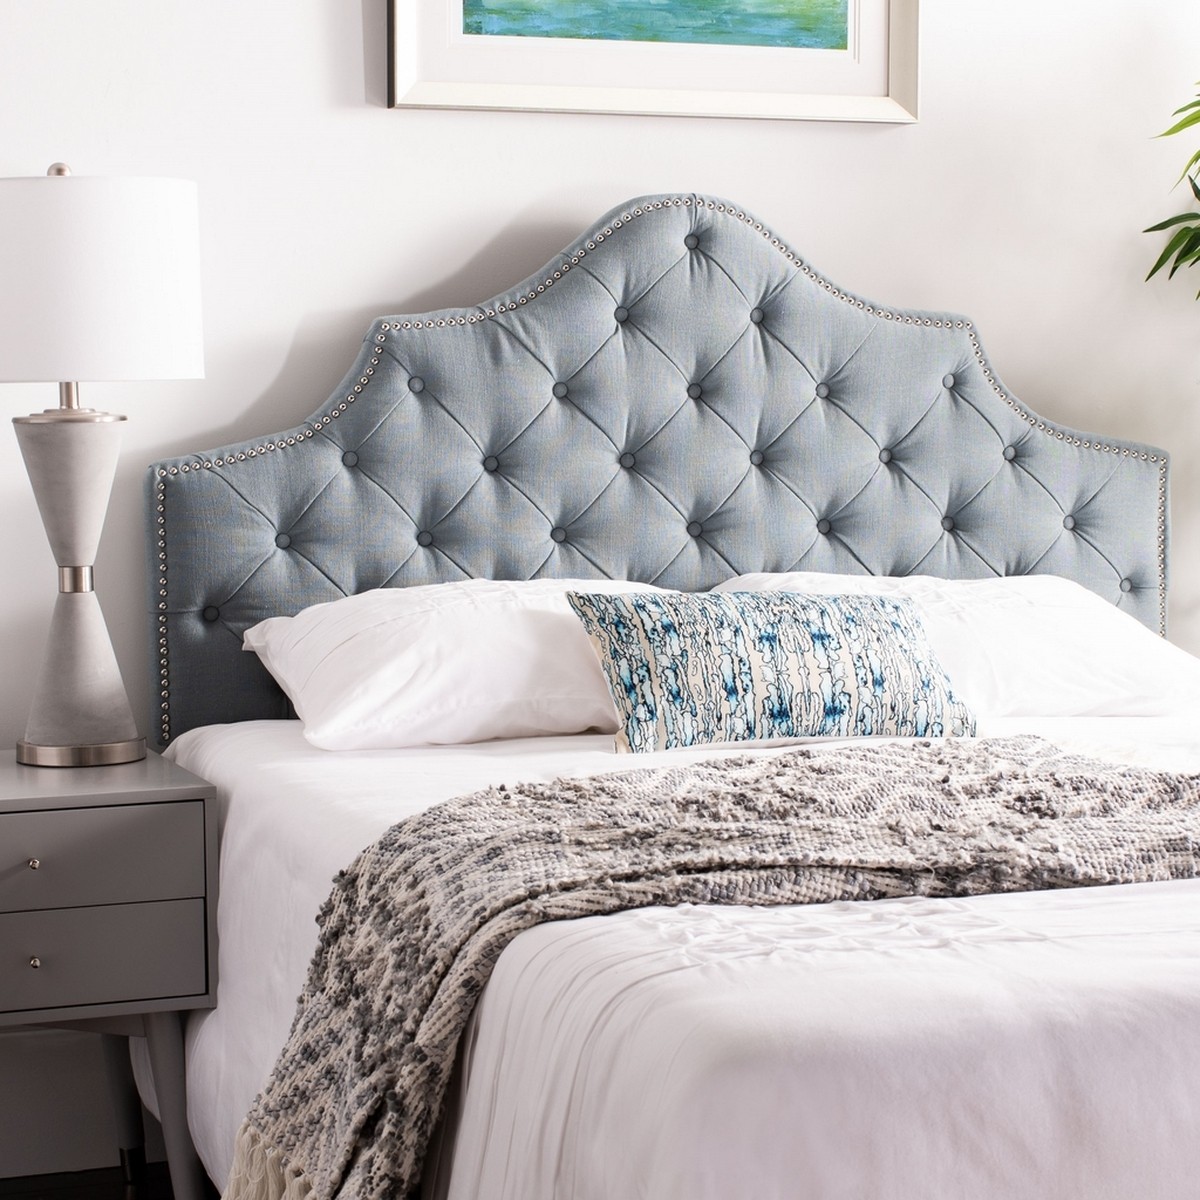 Arebelle Sky Blue Tufted Headboard Headboards Furniture